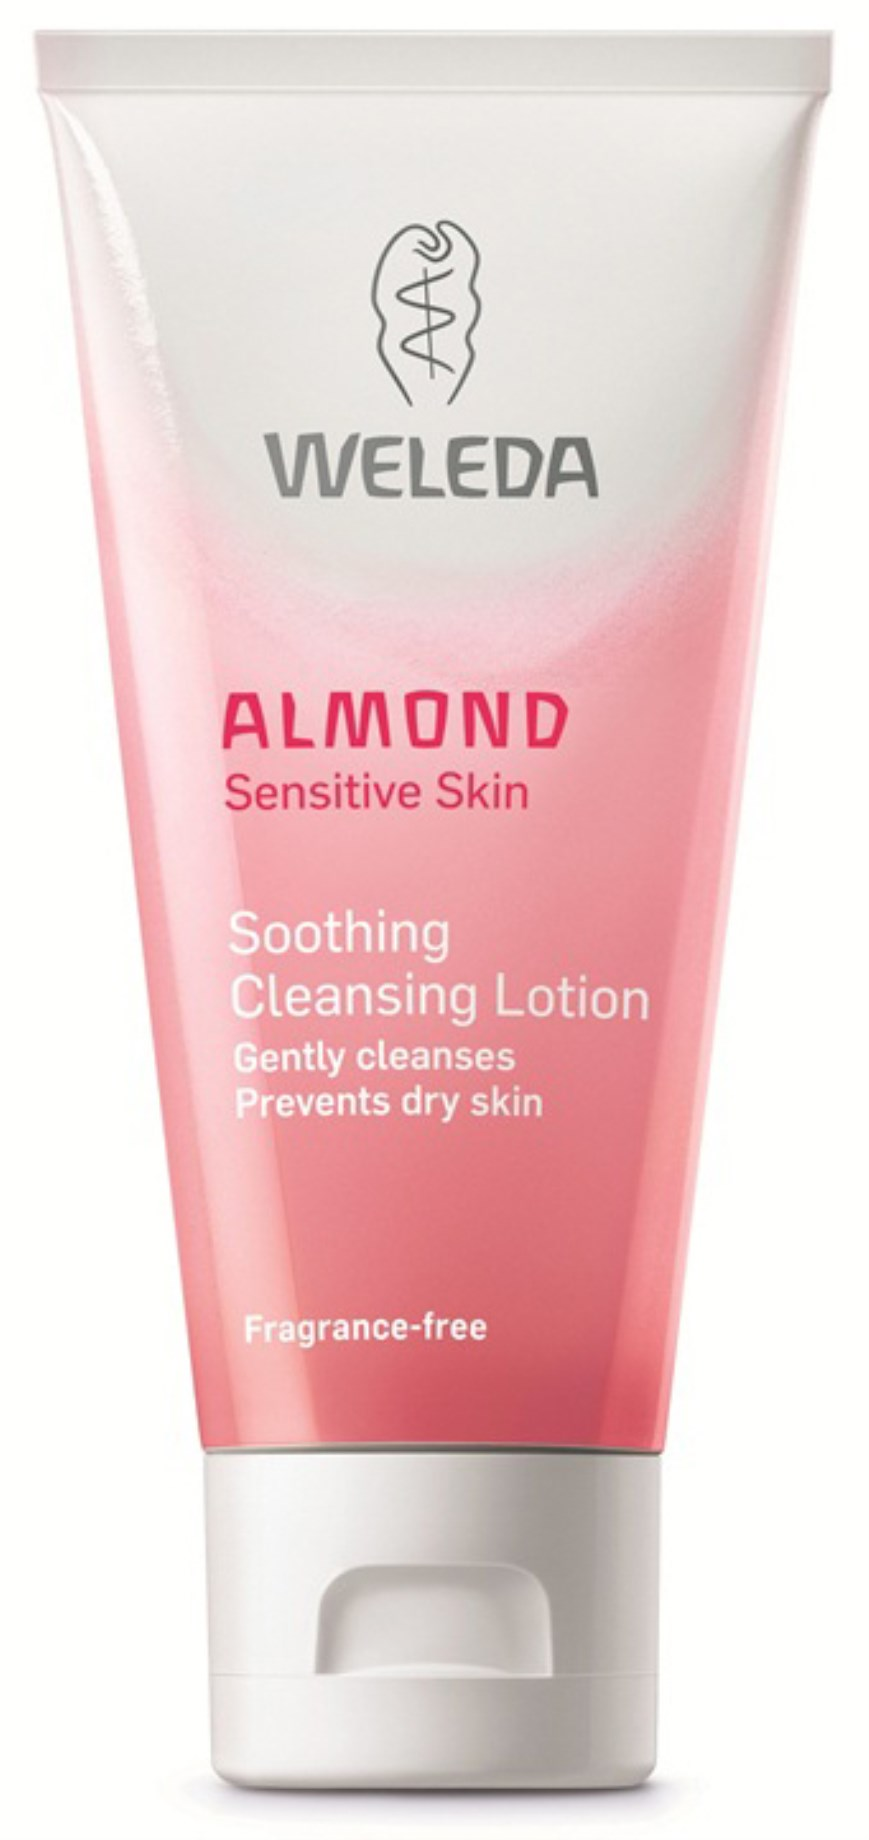 Weleda Almond Soothing Cleansing Lotion,  - Weleda